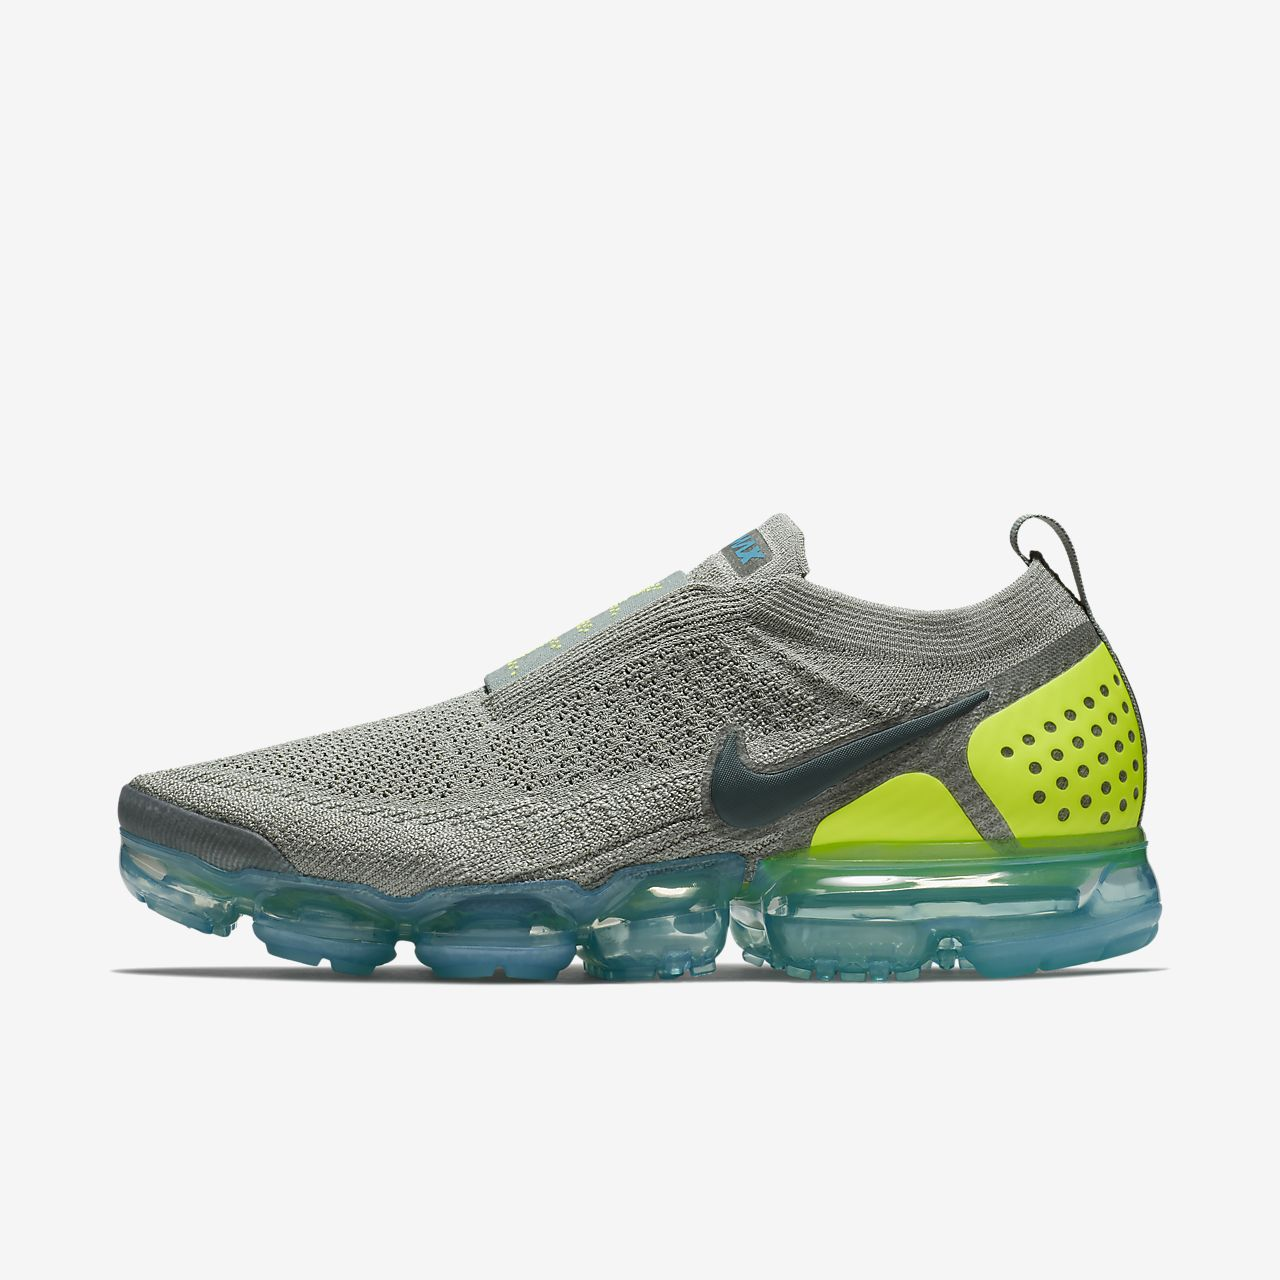 Nike Air Vapormax Limited Edition Flyknit Mens turq Running Recommended Shoes stores